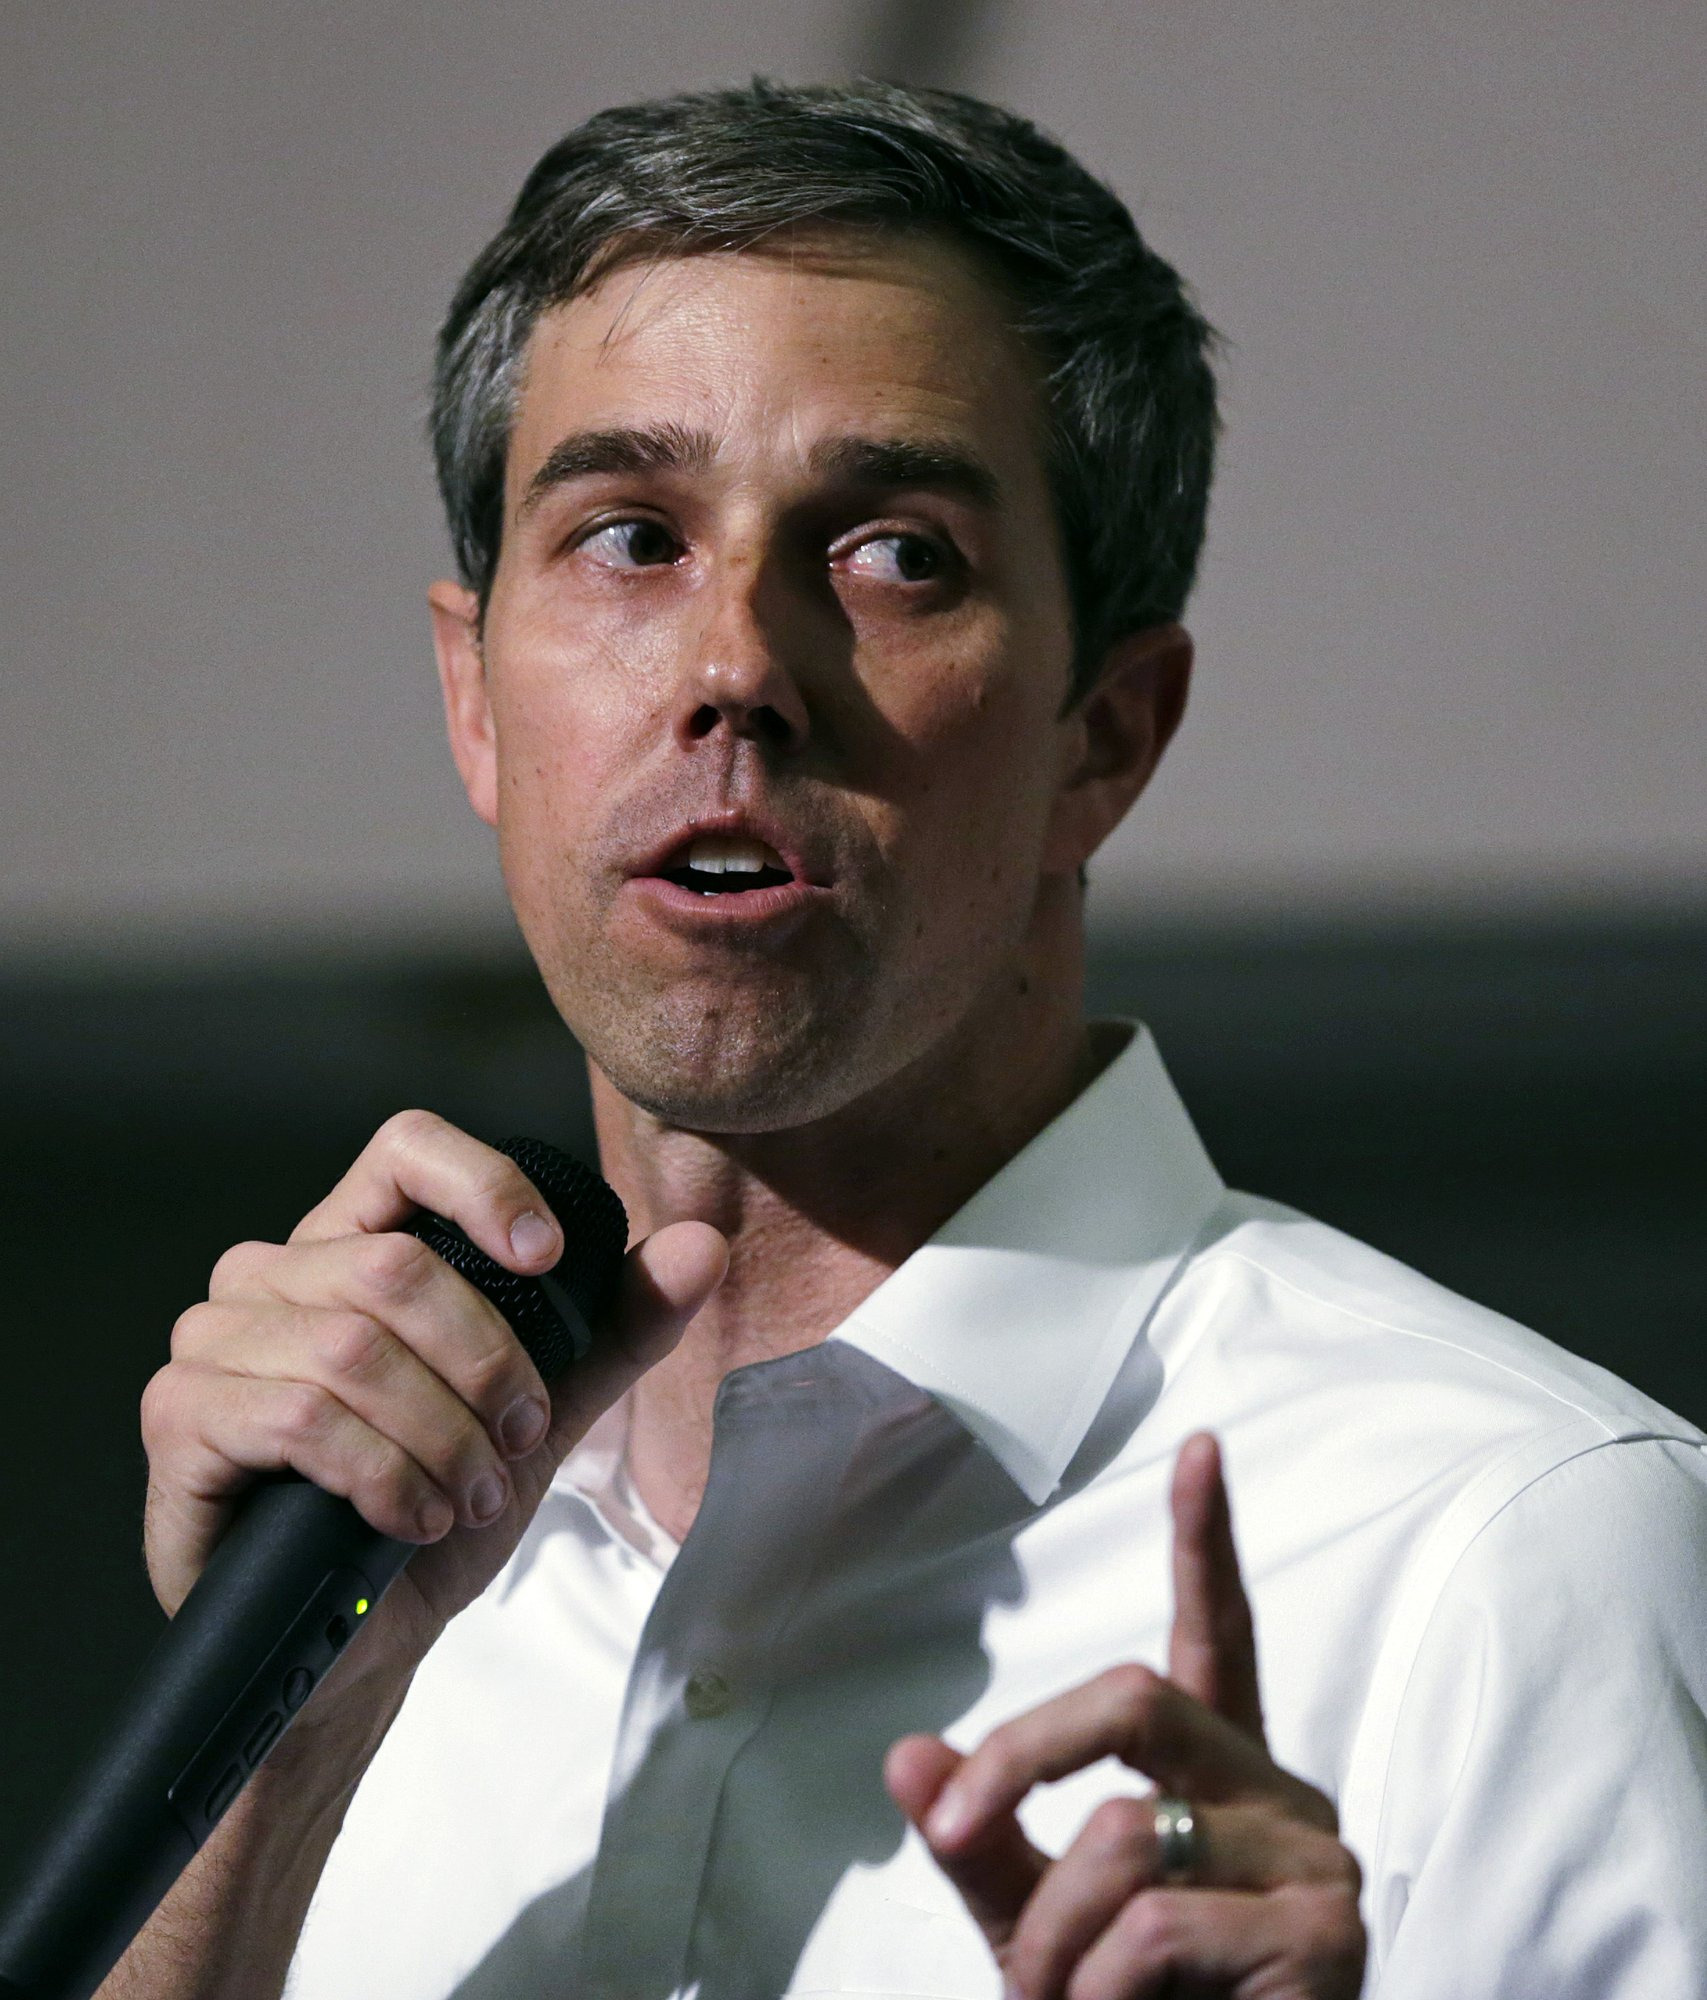 AP – Beto O'Rourke making 1st trip to early voting South Carolina